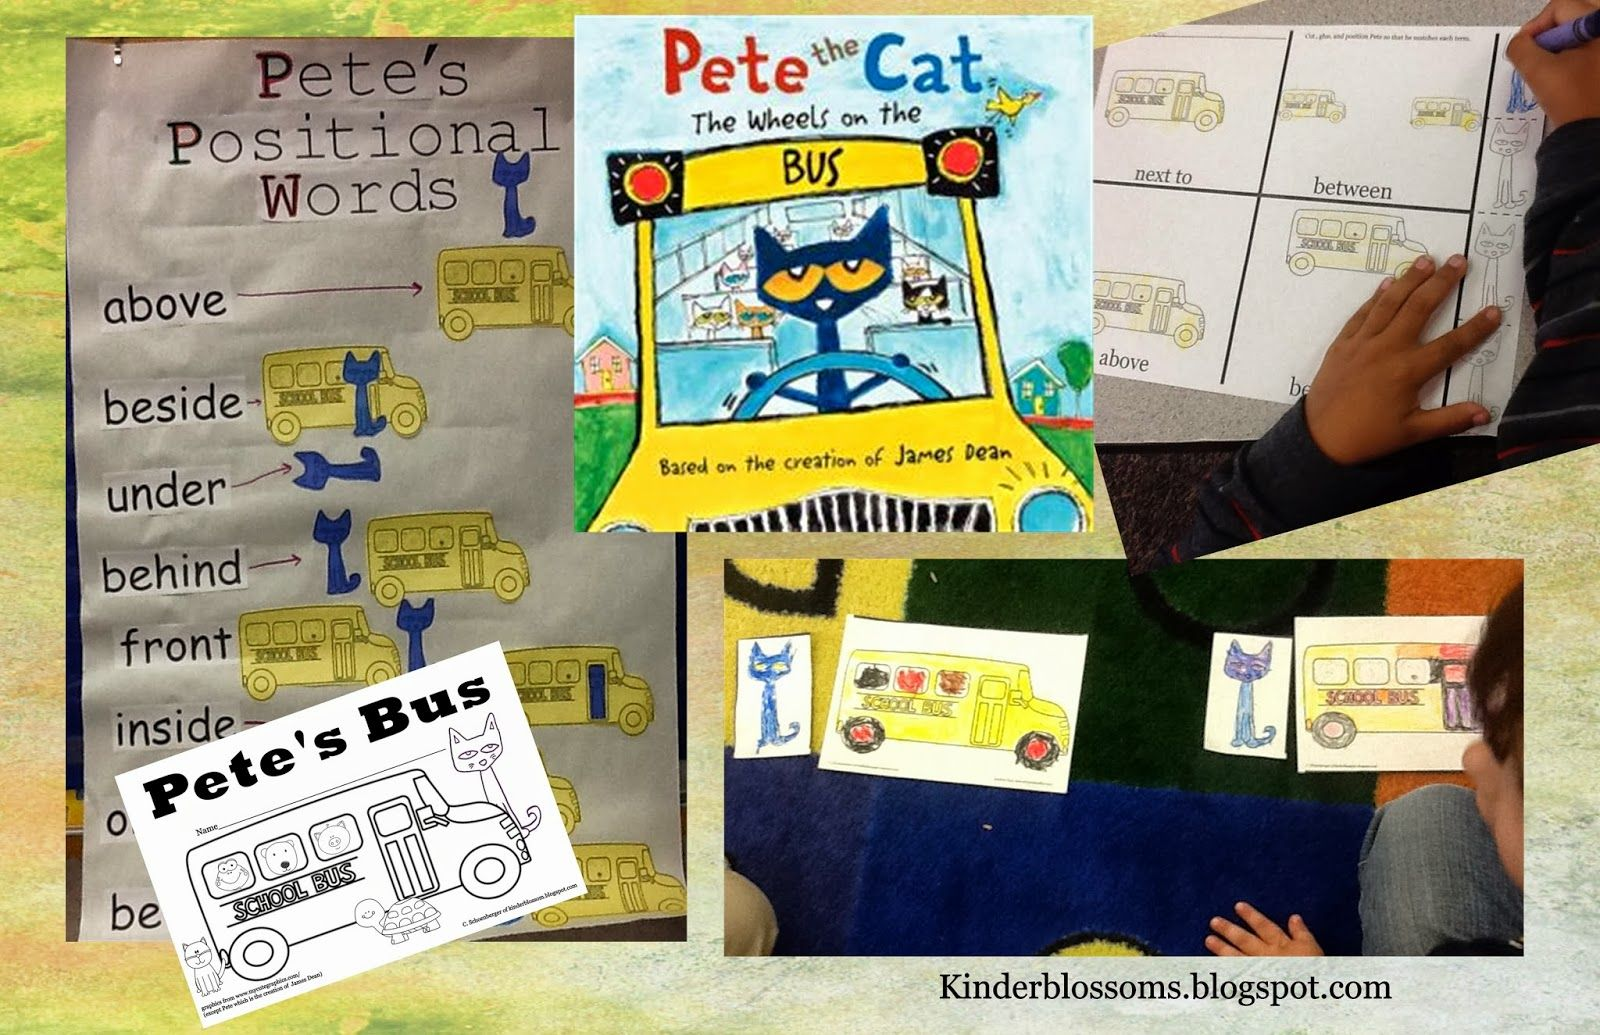 Christina S Kinder Blossoms Positional Words With Pete